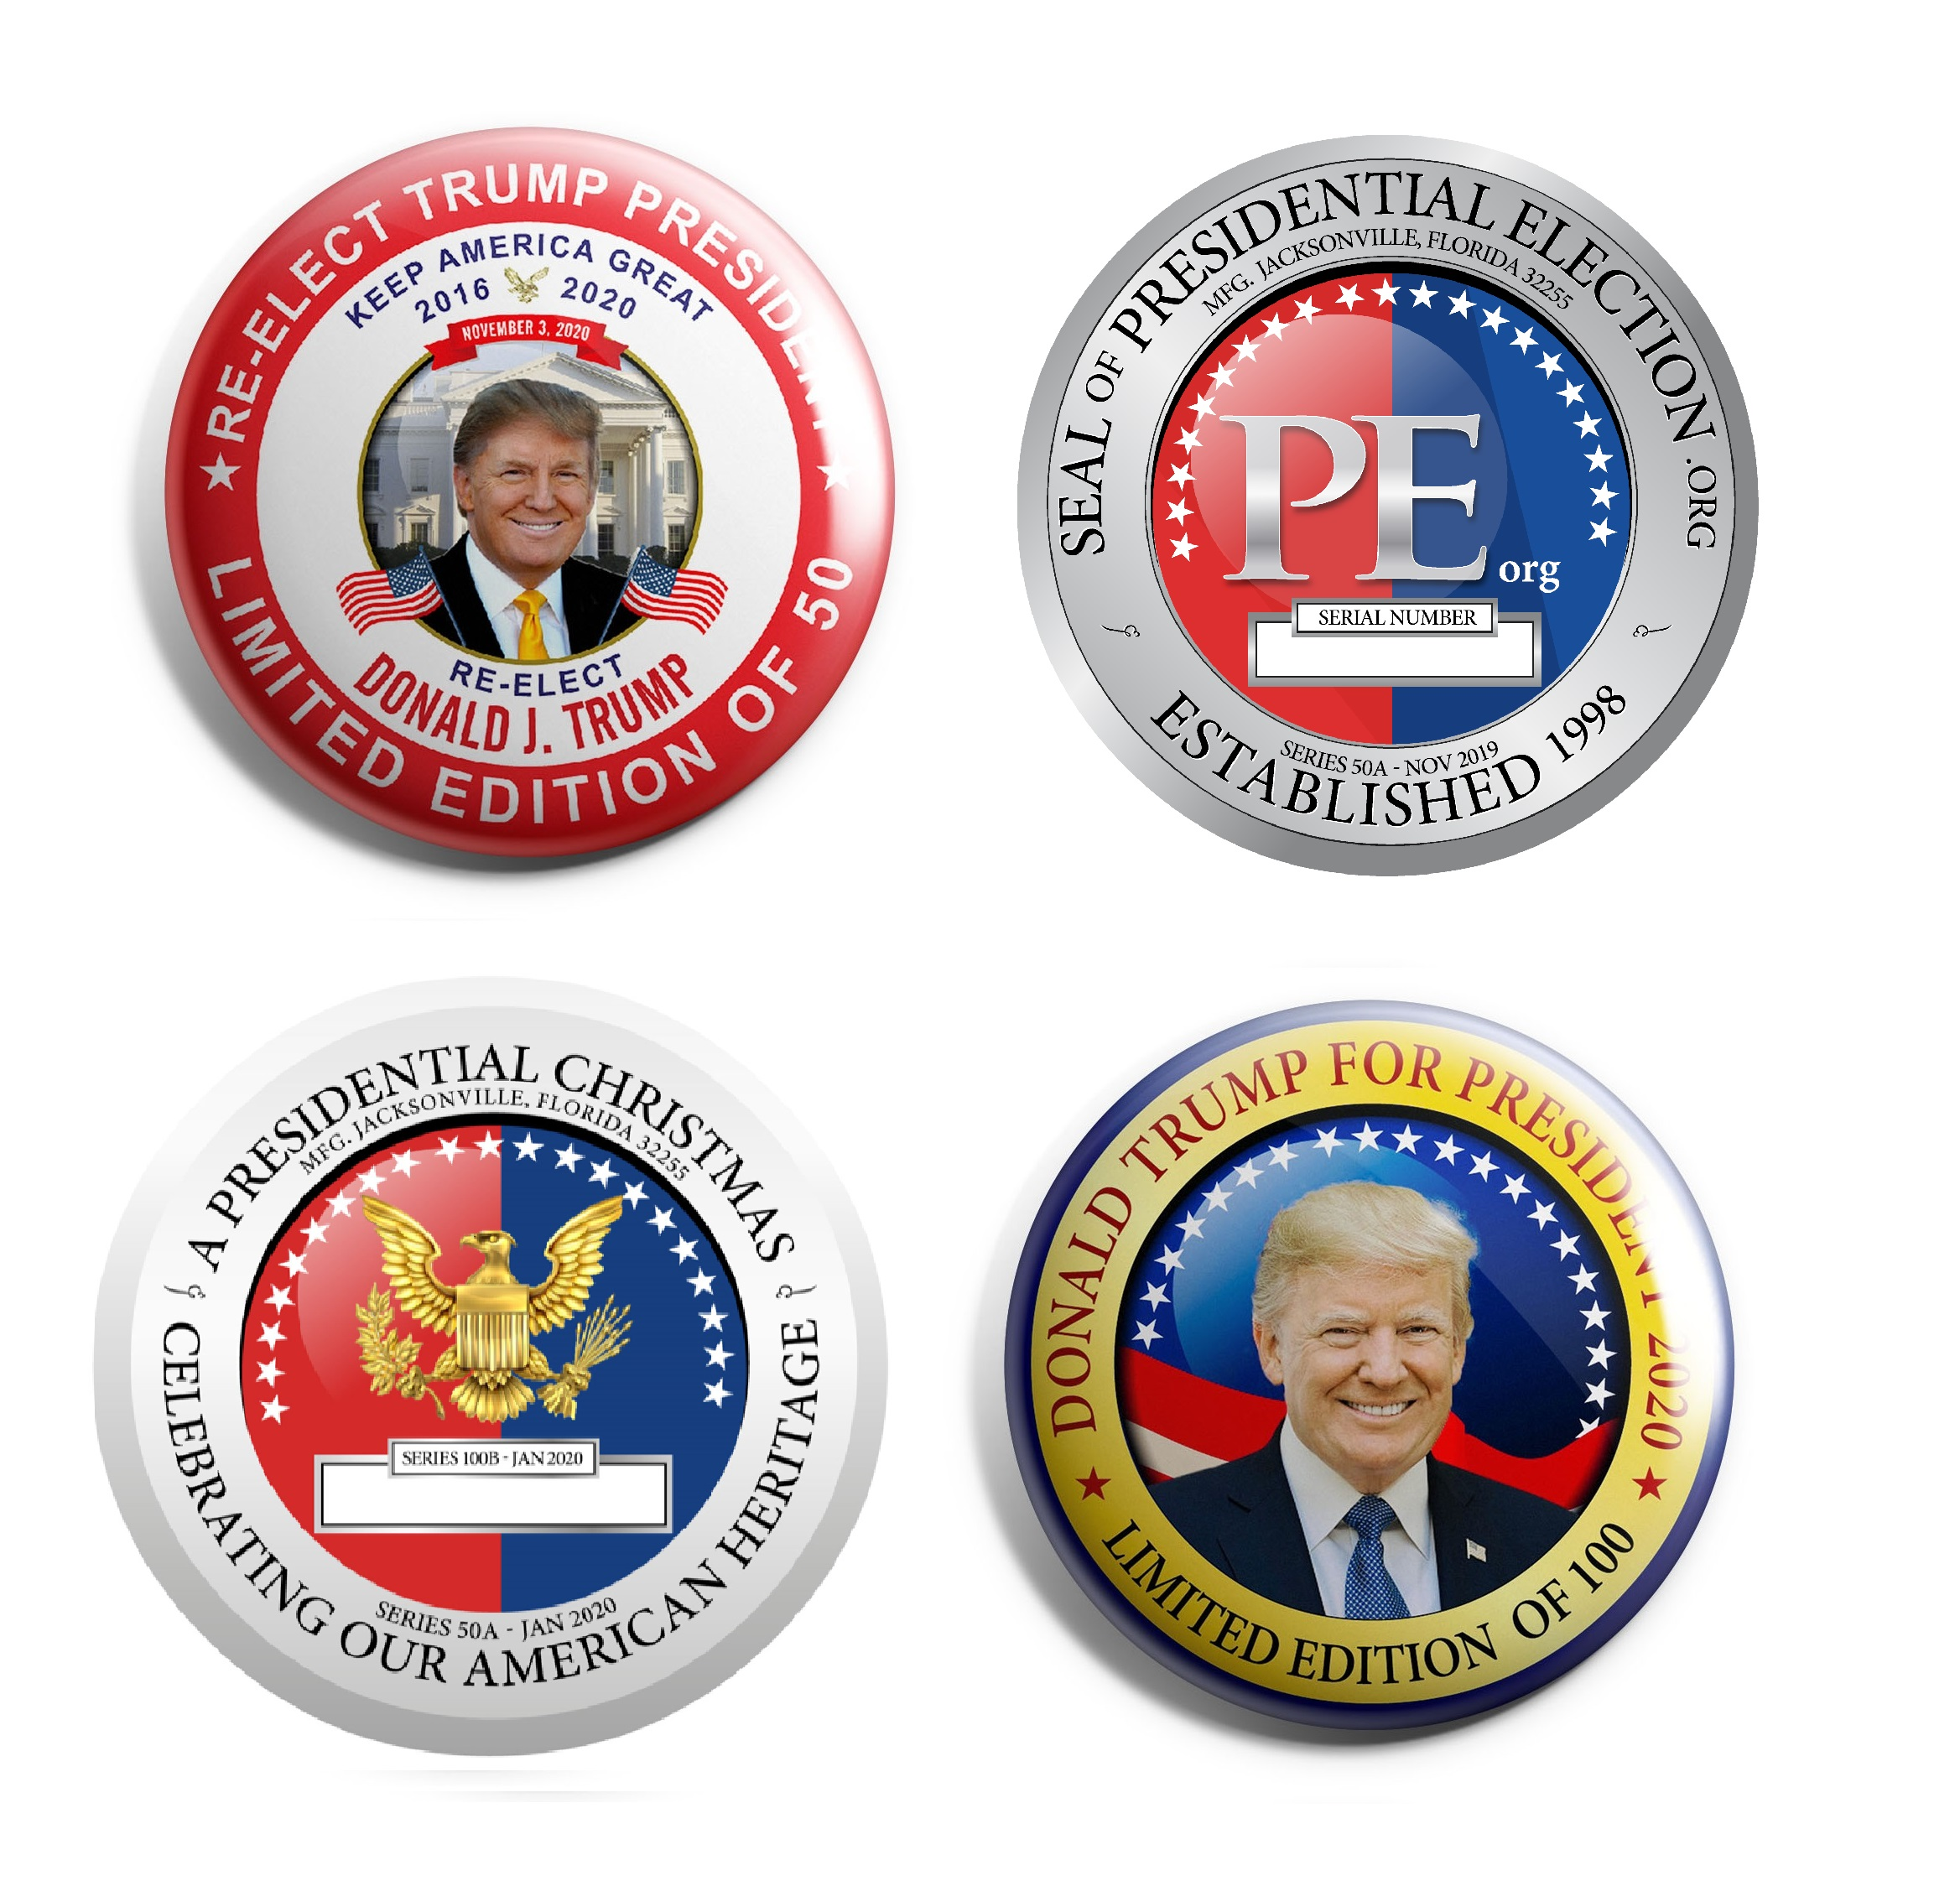 Donald Trump Limited Edition Buttons